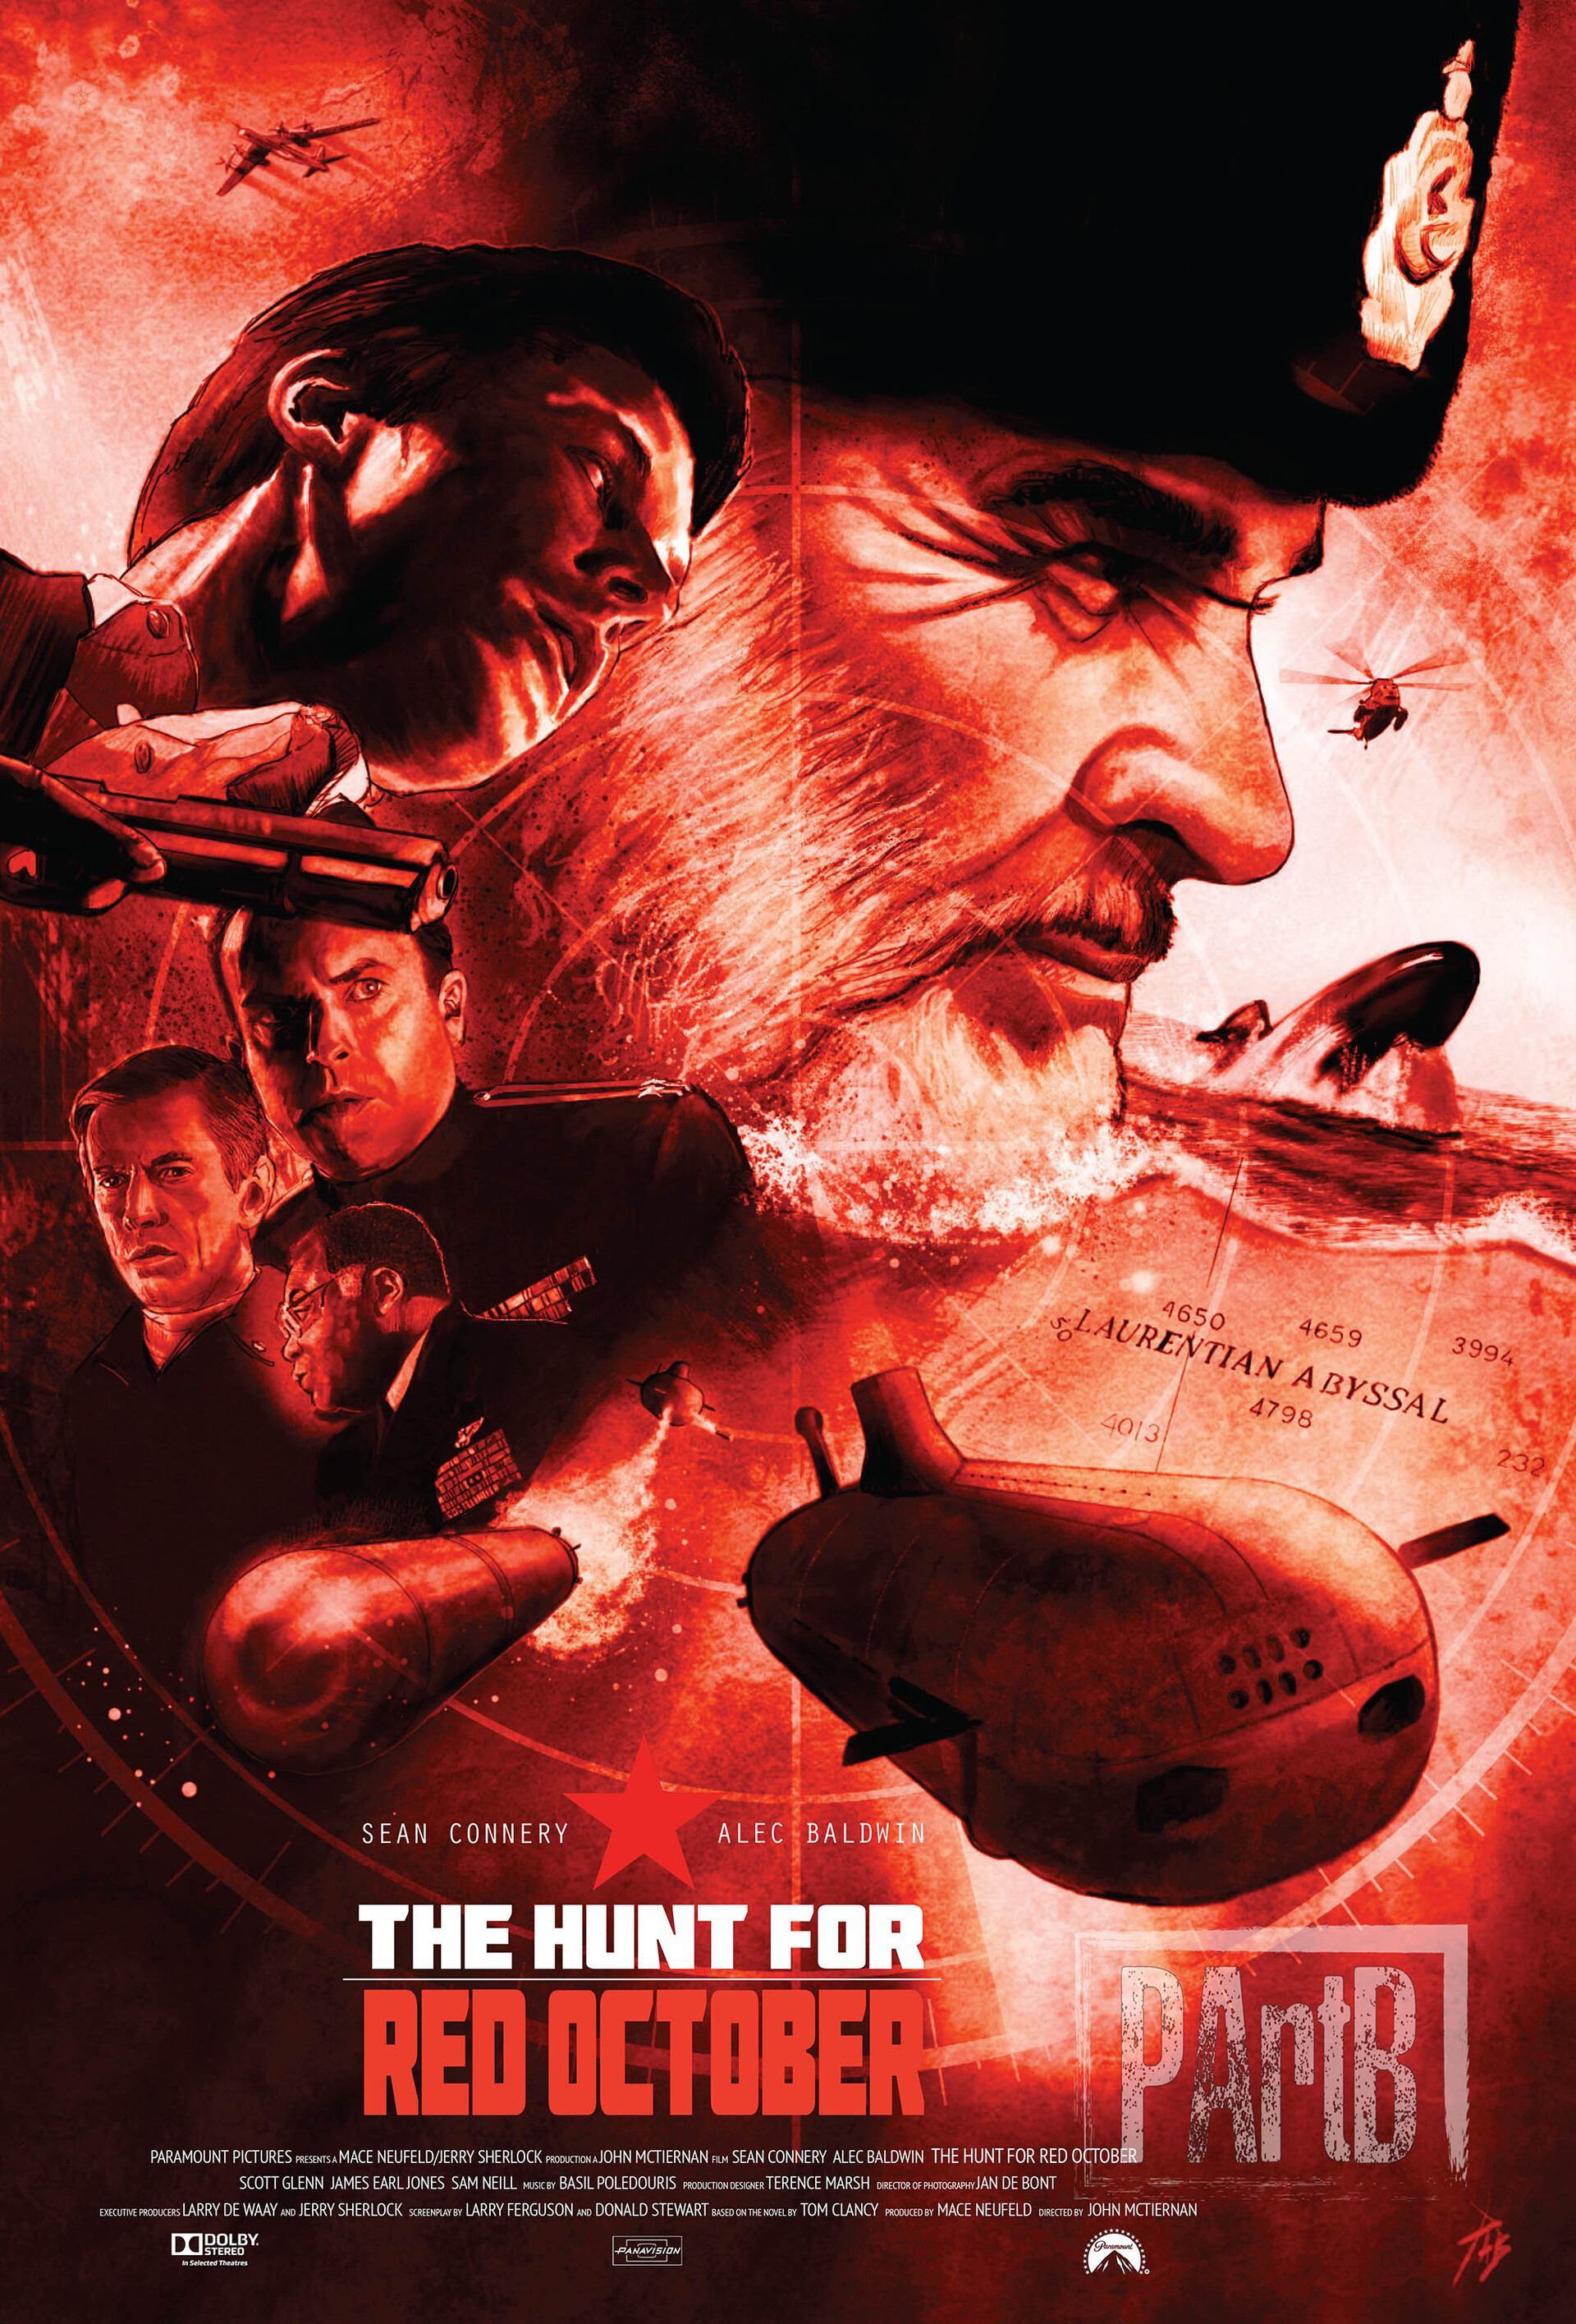 Artstation Sir Sean Connery The Hunt For Red October 1990 Paul Butcher